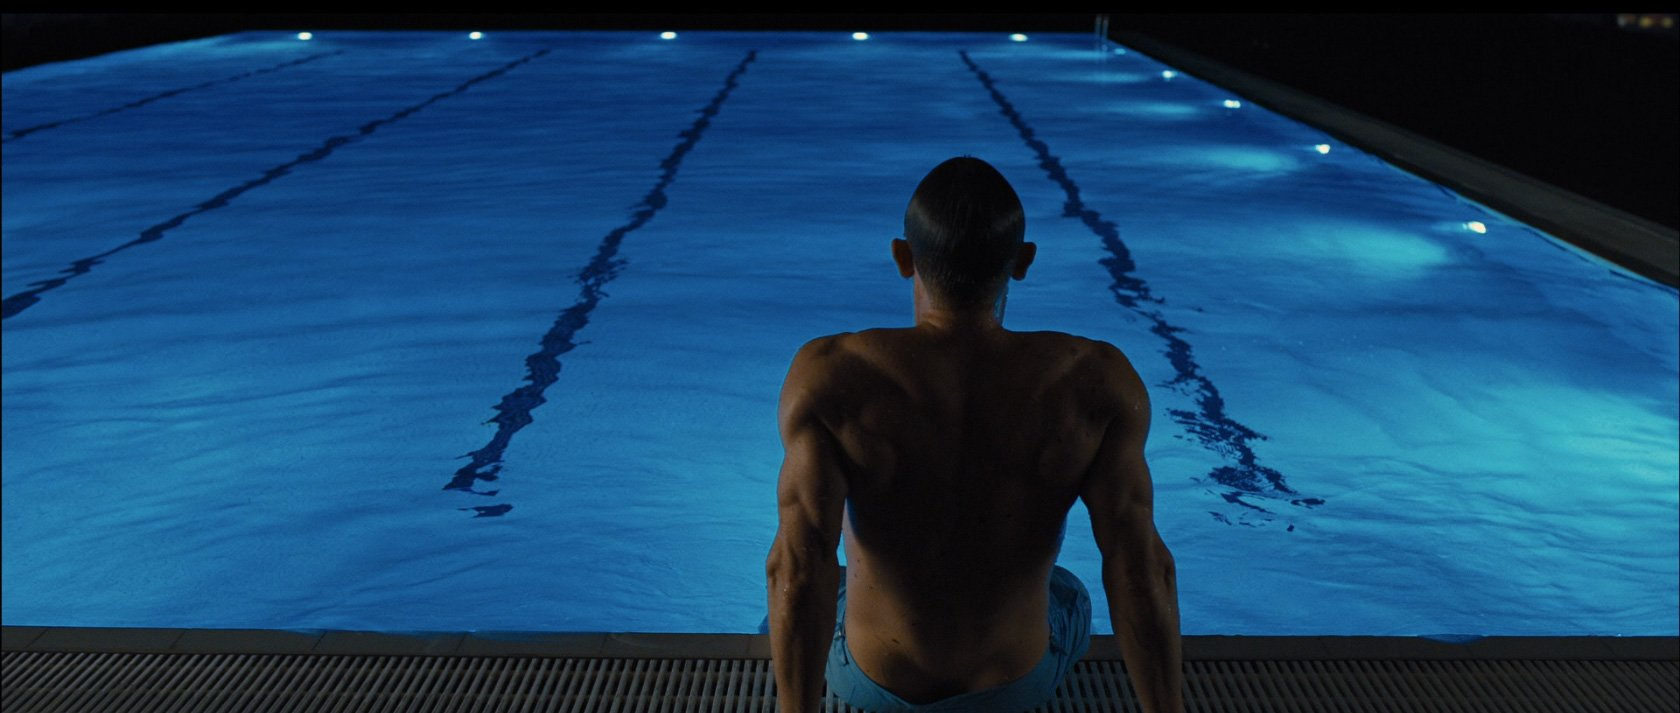 296f4844b0 Blue Swimming Trunks Again in Skyfall – The Suits of James Bond